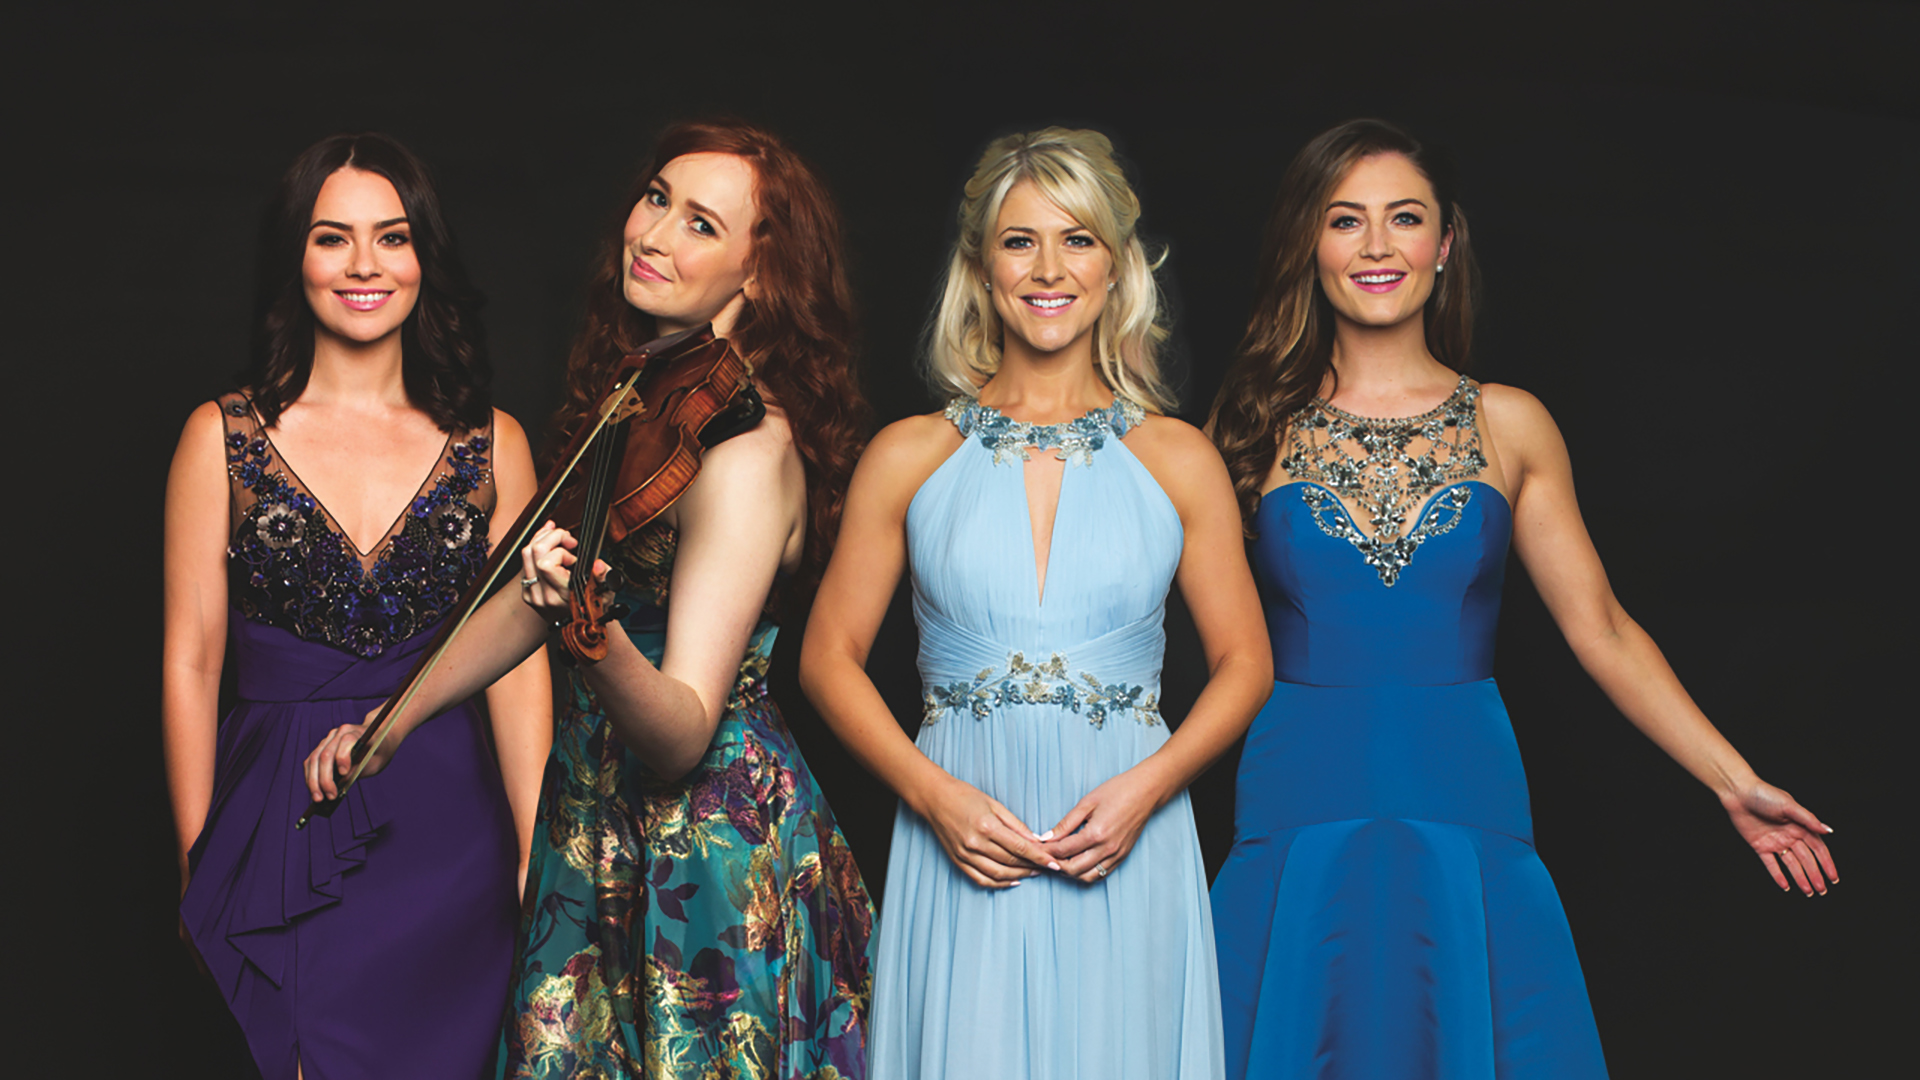 Panhandle PBS members to get special Celtic Woman offer